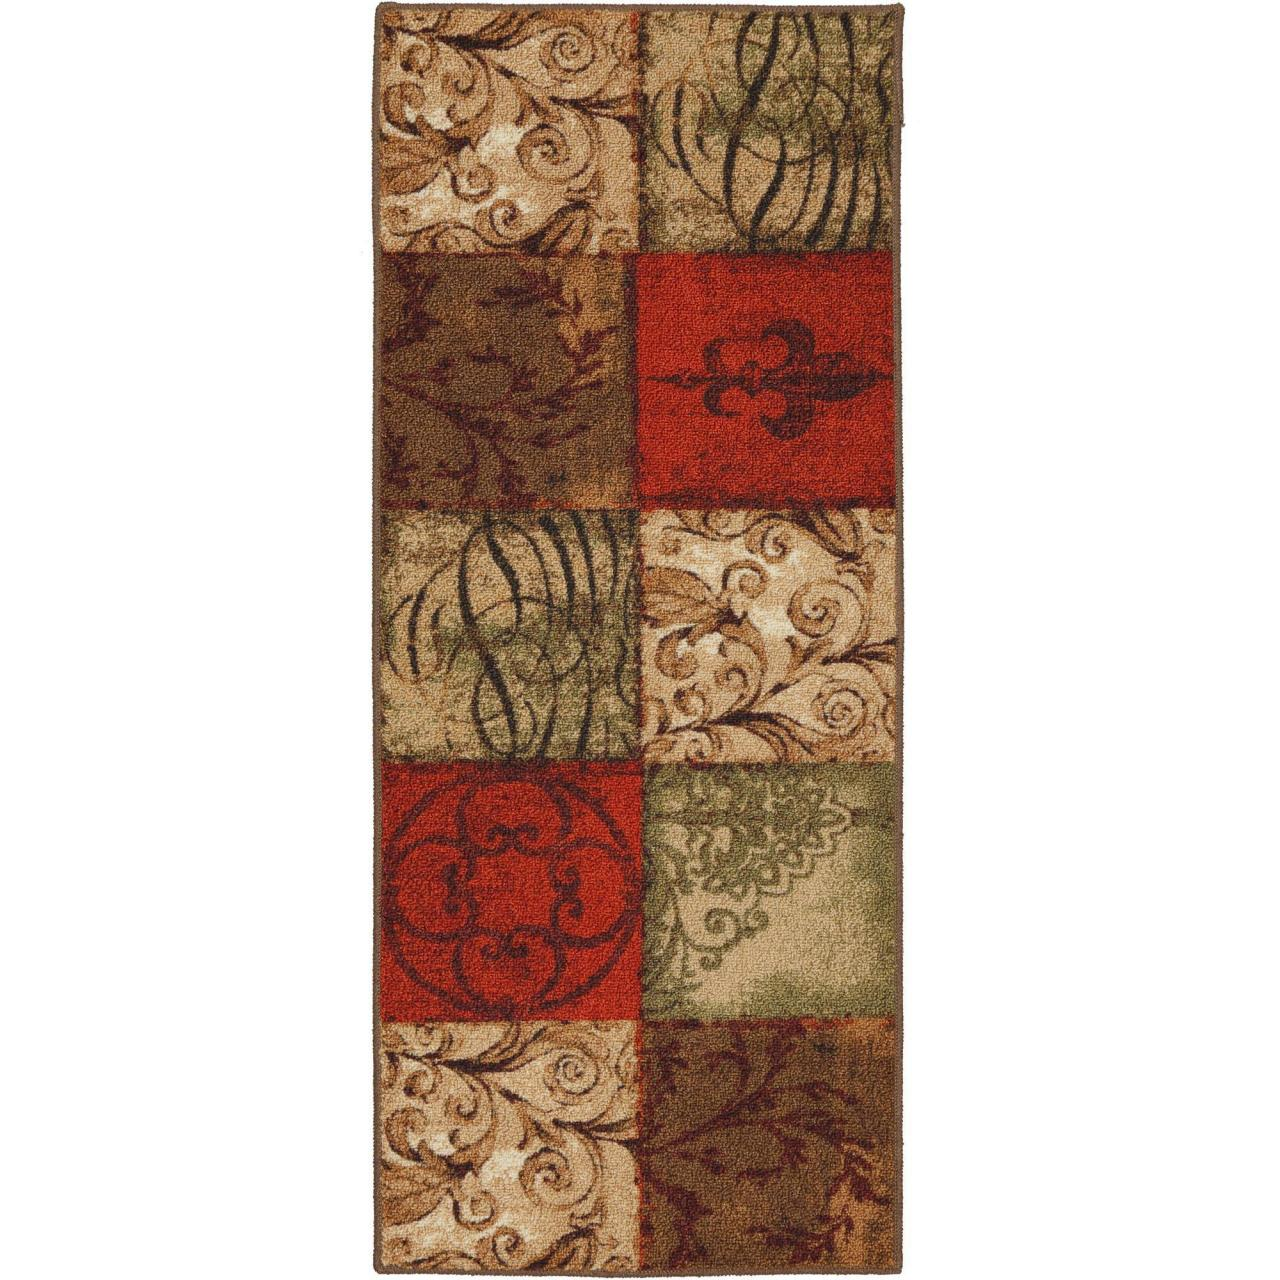 China Marvelous Mohawk Kitchen Rugs In Home Tuscany Runner 20 X 50 Walmart Com on sale